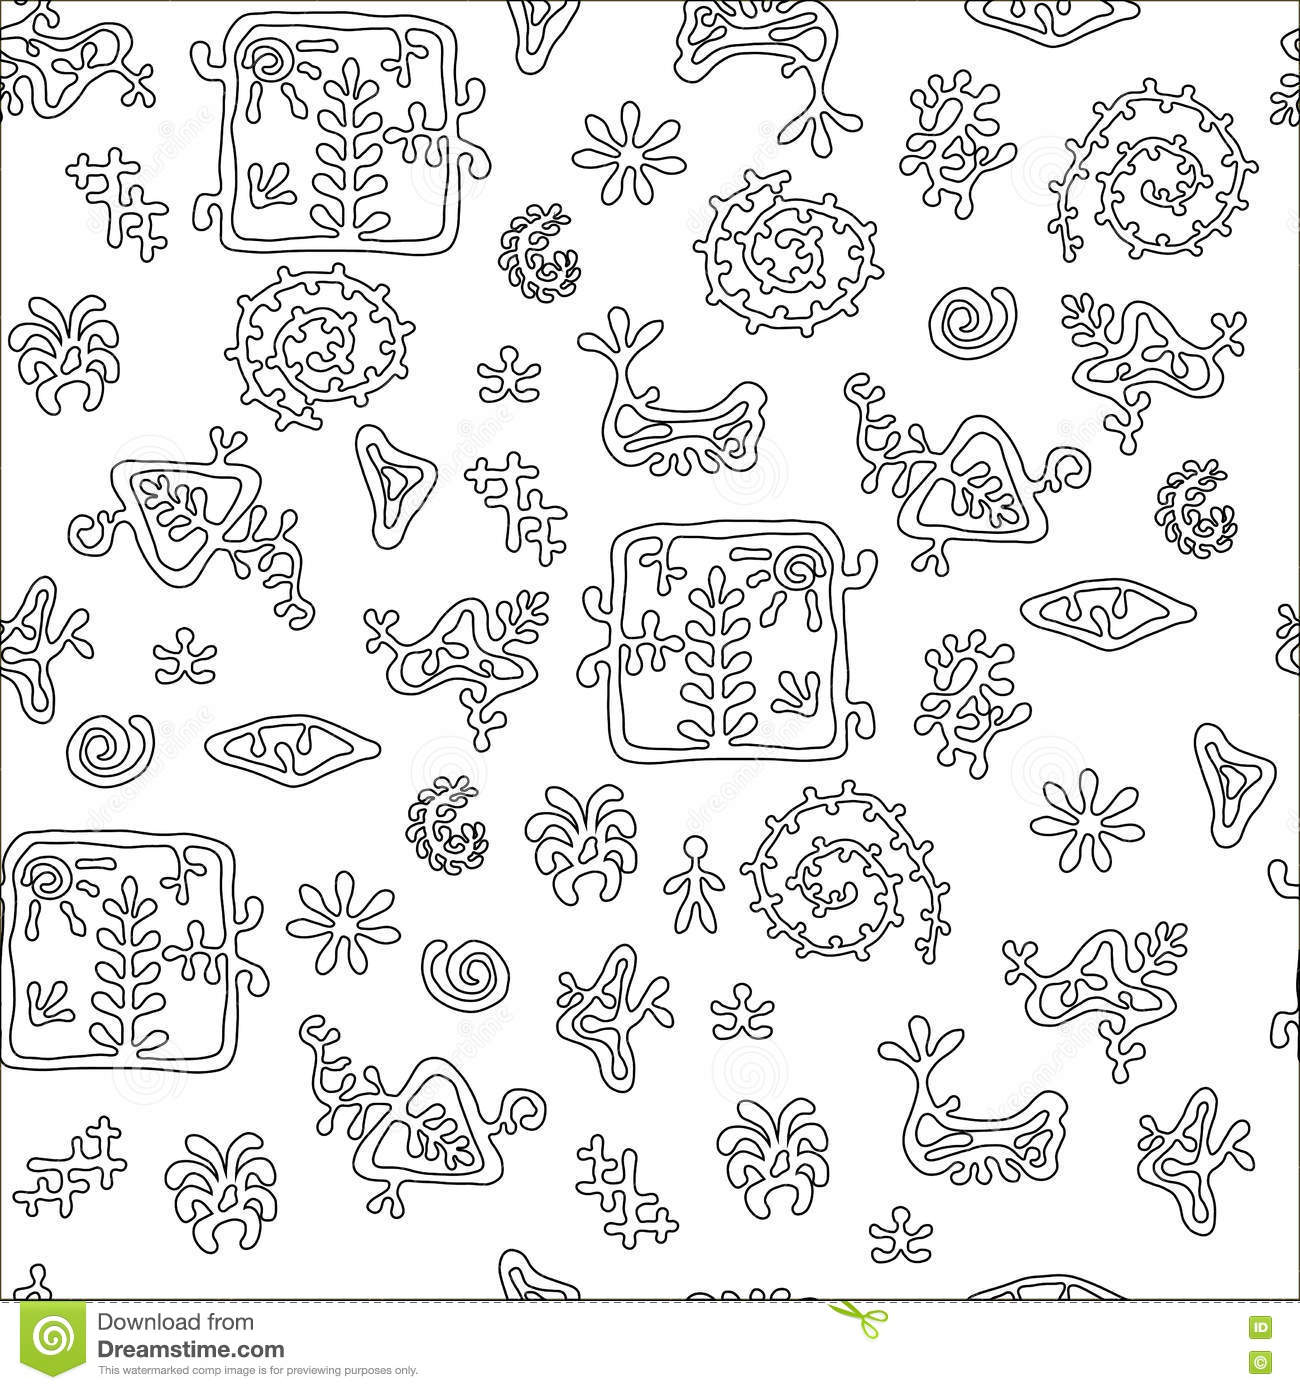 antistress coloring - Coloring Book Paper Stock